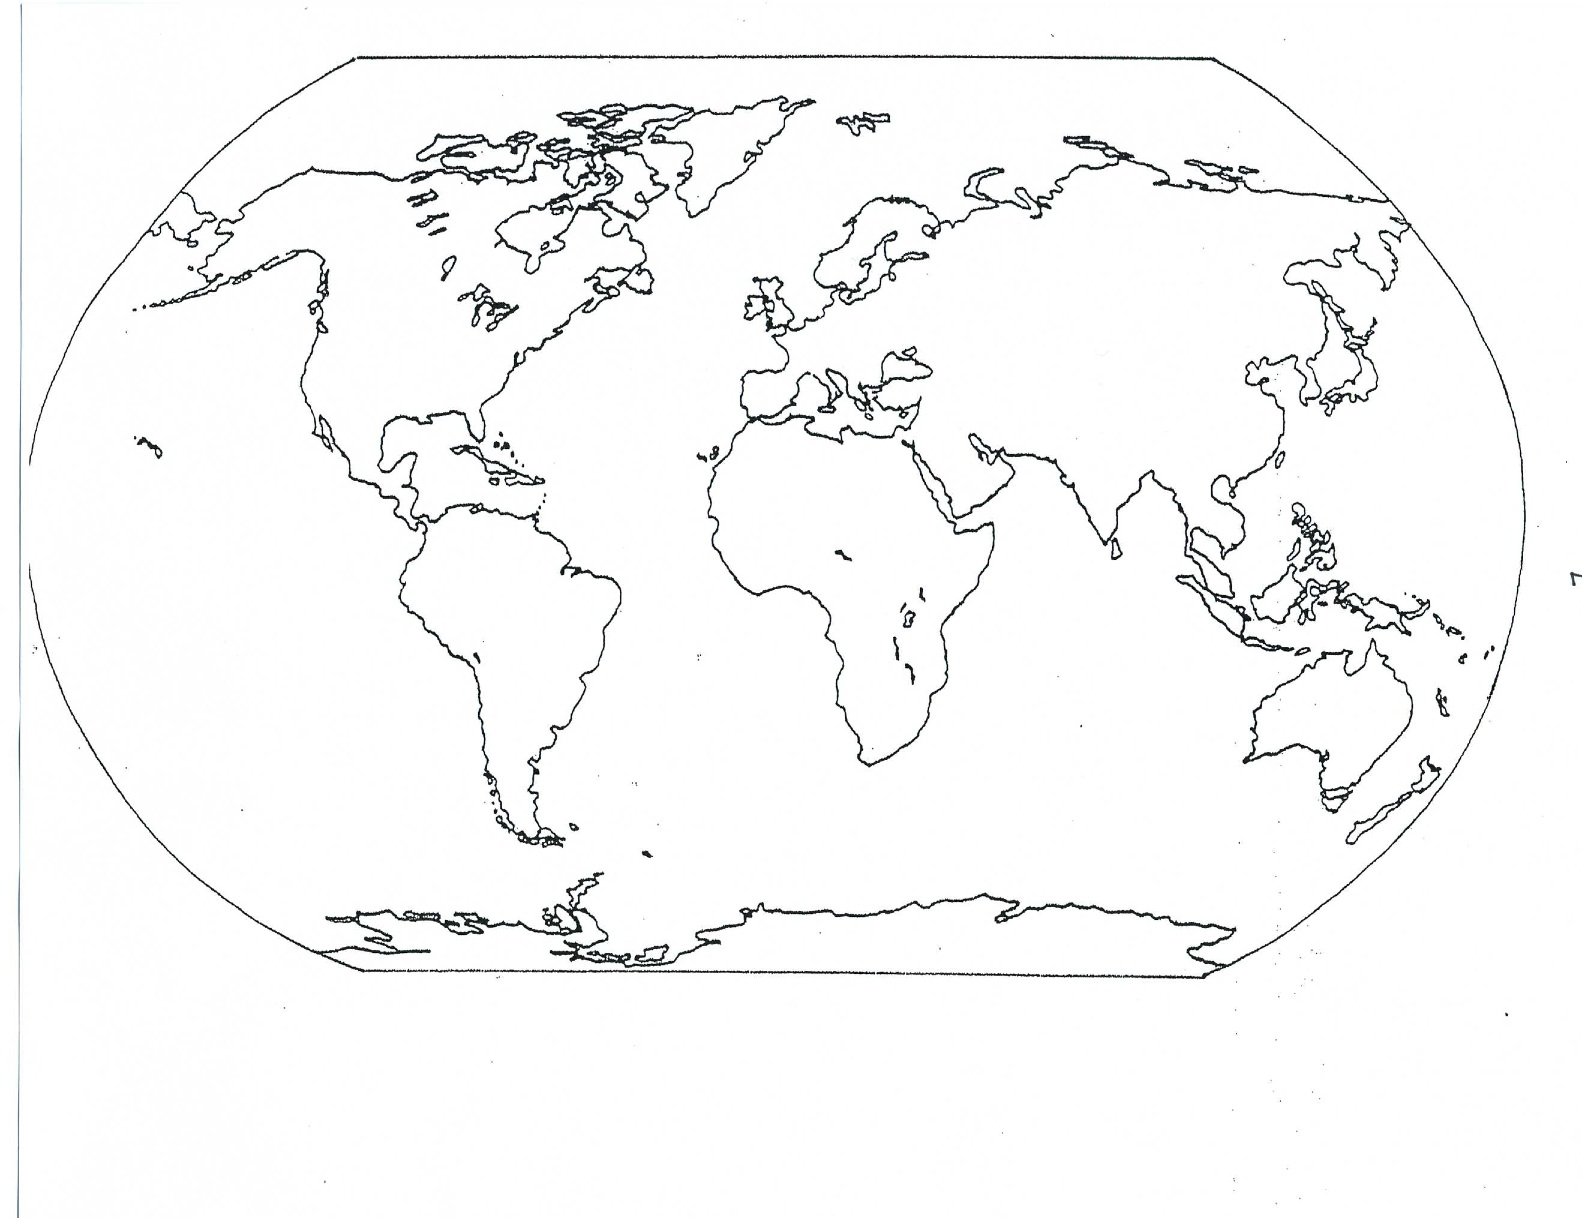 Blank Physical World Map Printable Image - BLANK WORLD MA...